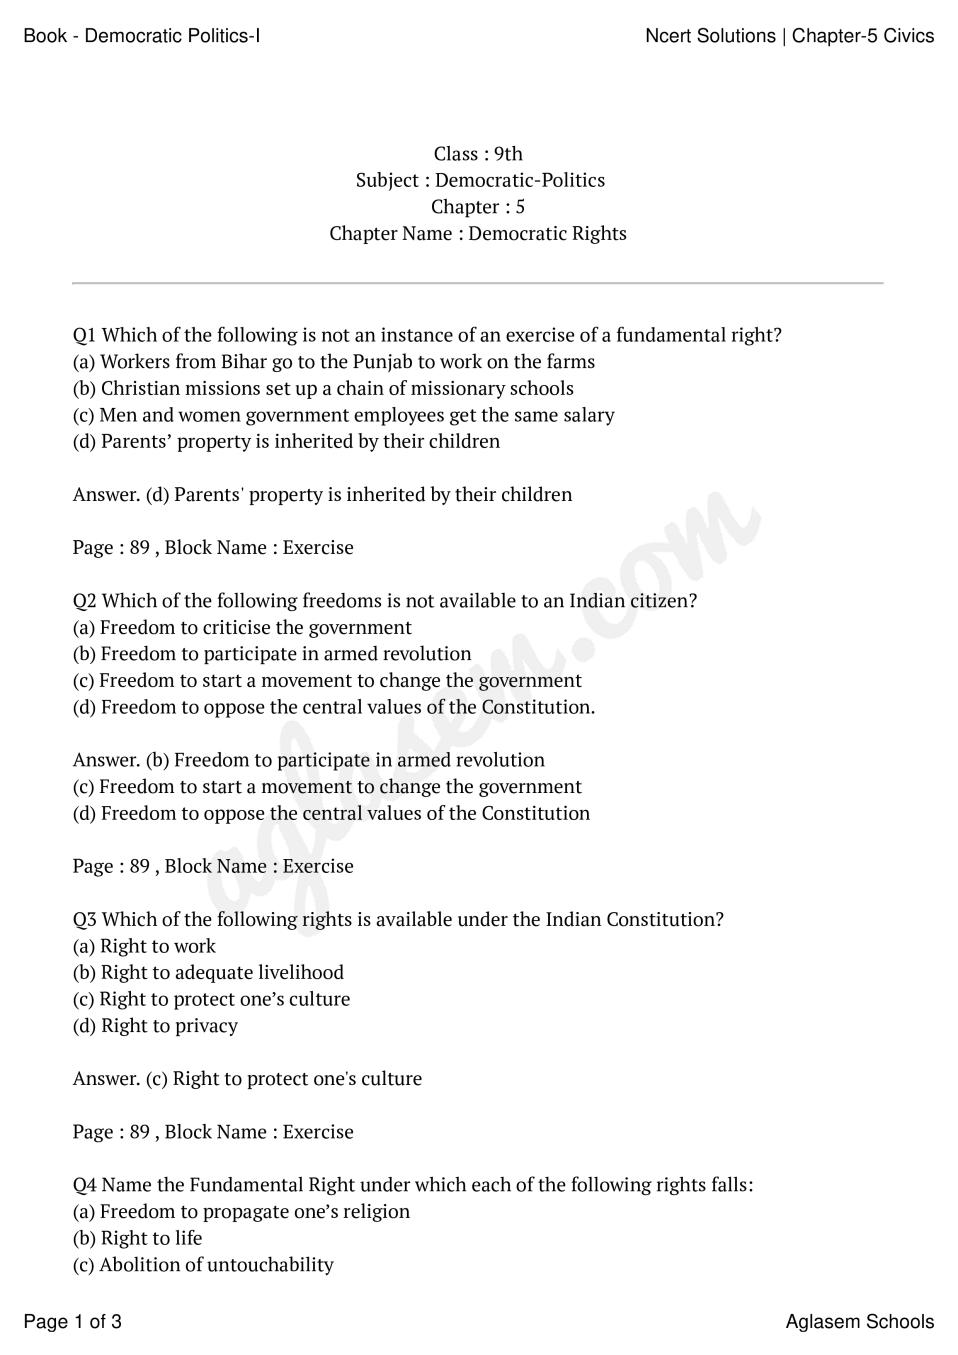 NCERT Solutions for Class 9 Social Science Civics Chapter 5